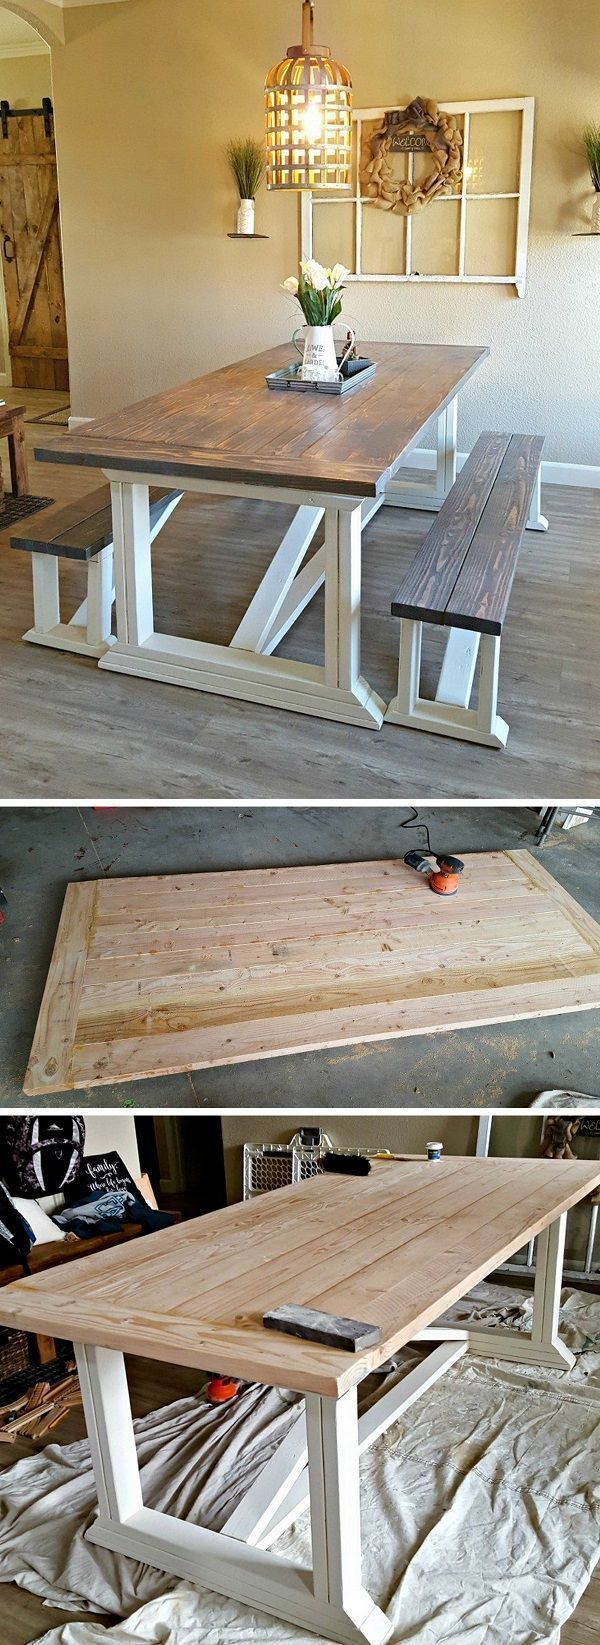 Rustic wood Table Farmhouse Style images